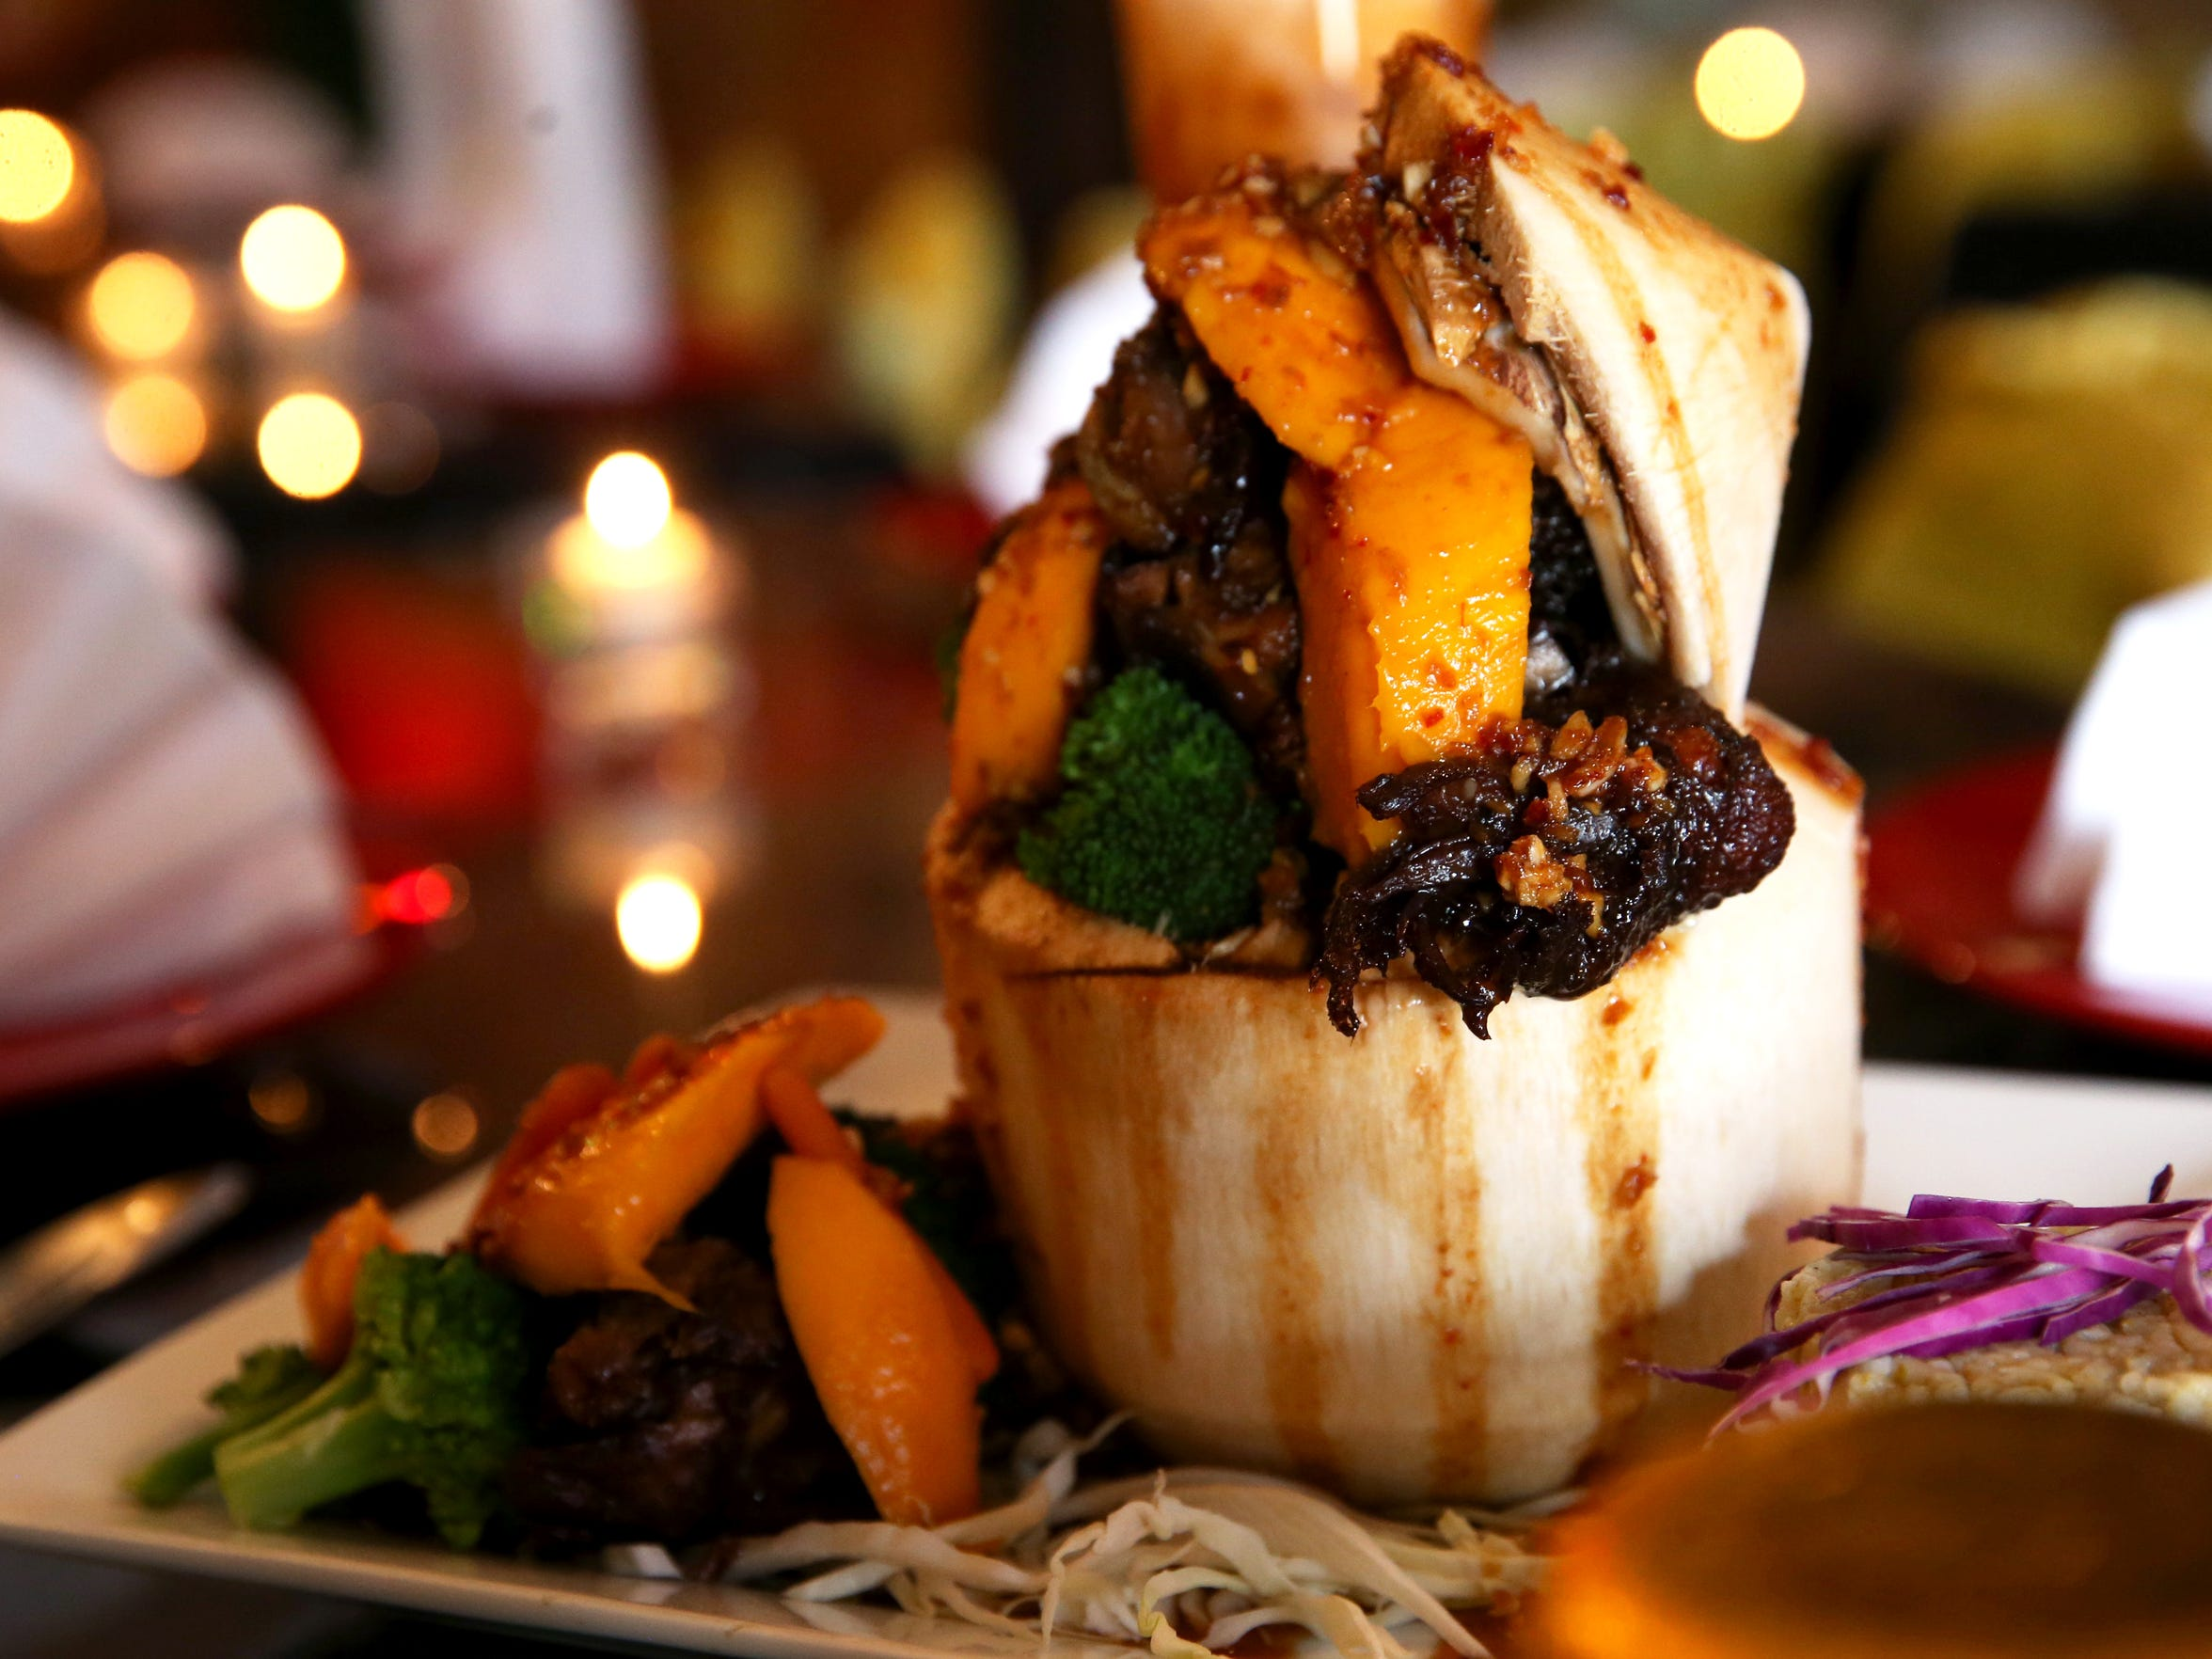 A mango duck with black bean sauce, sliced and pureed mango, served inside of a coconut and prepared by Nipada Mulsing, or Chef Donna as she is known to her customers, at Reangthai Restaurant.